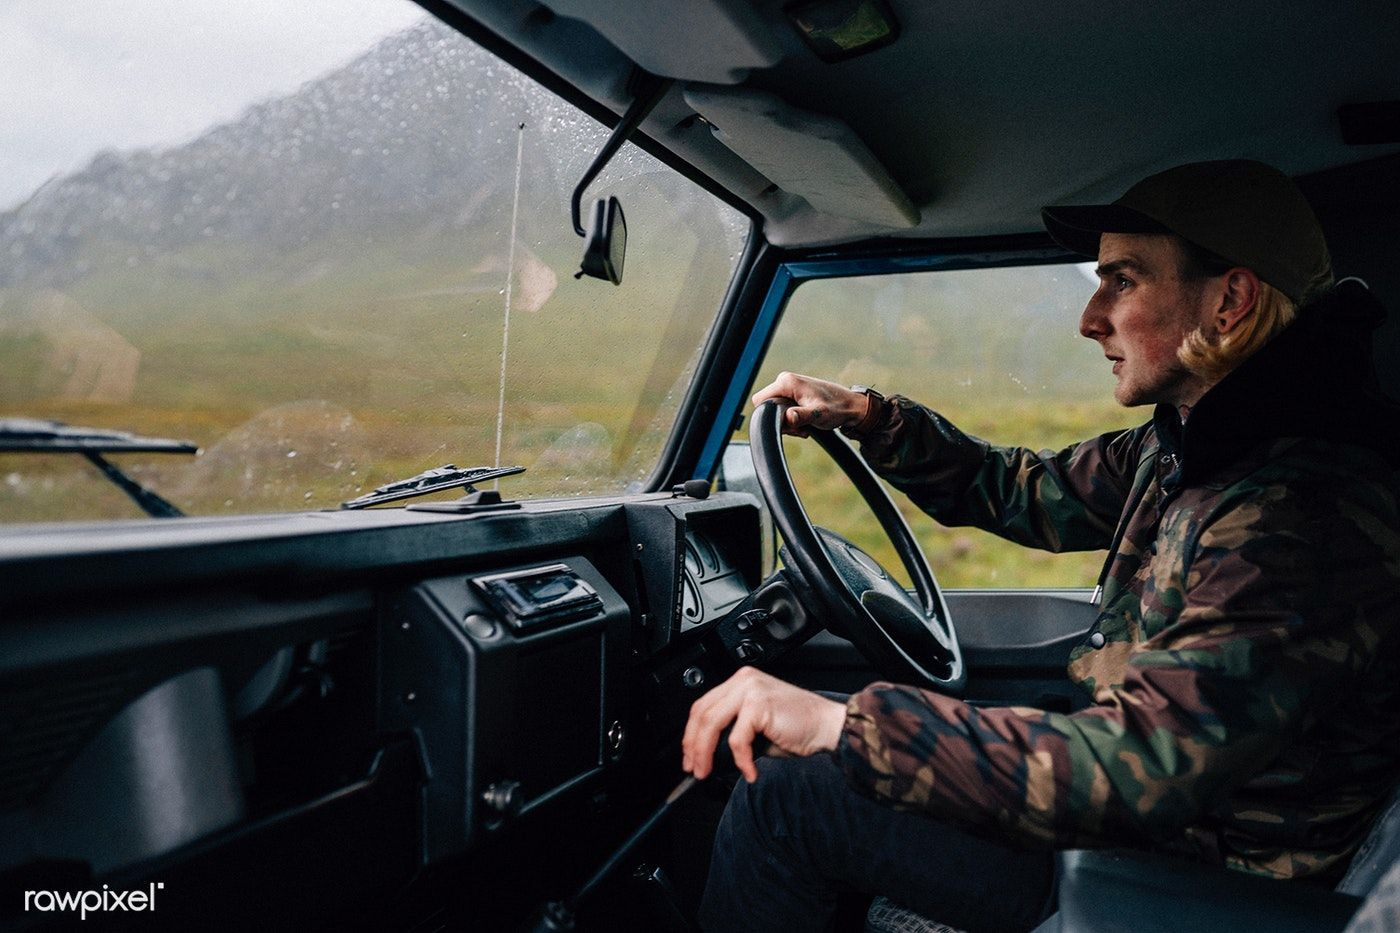 Man driving an old SUV in the Highlands free image by